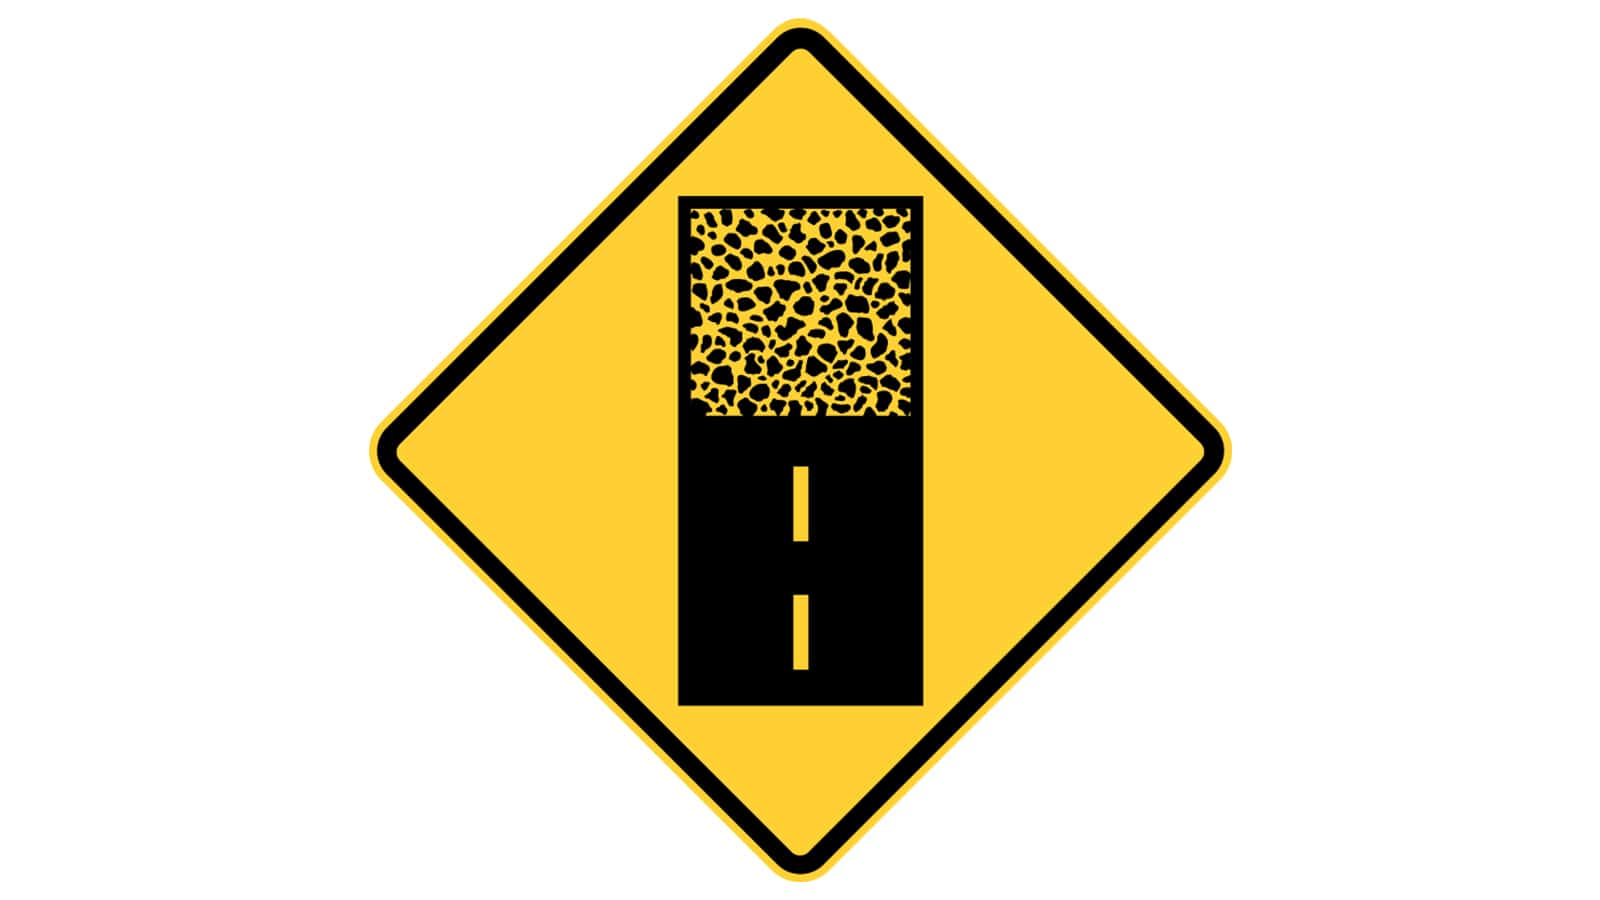 Warning sign Pavement Ends Ahead